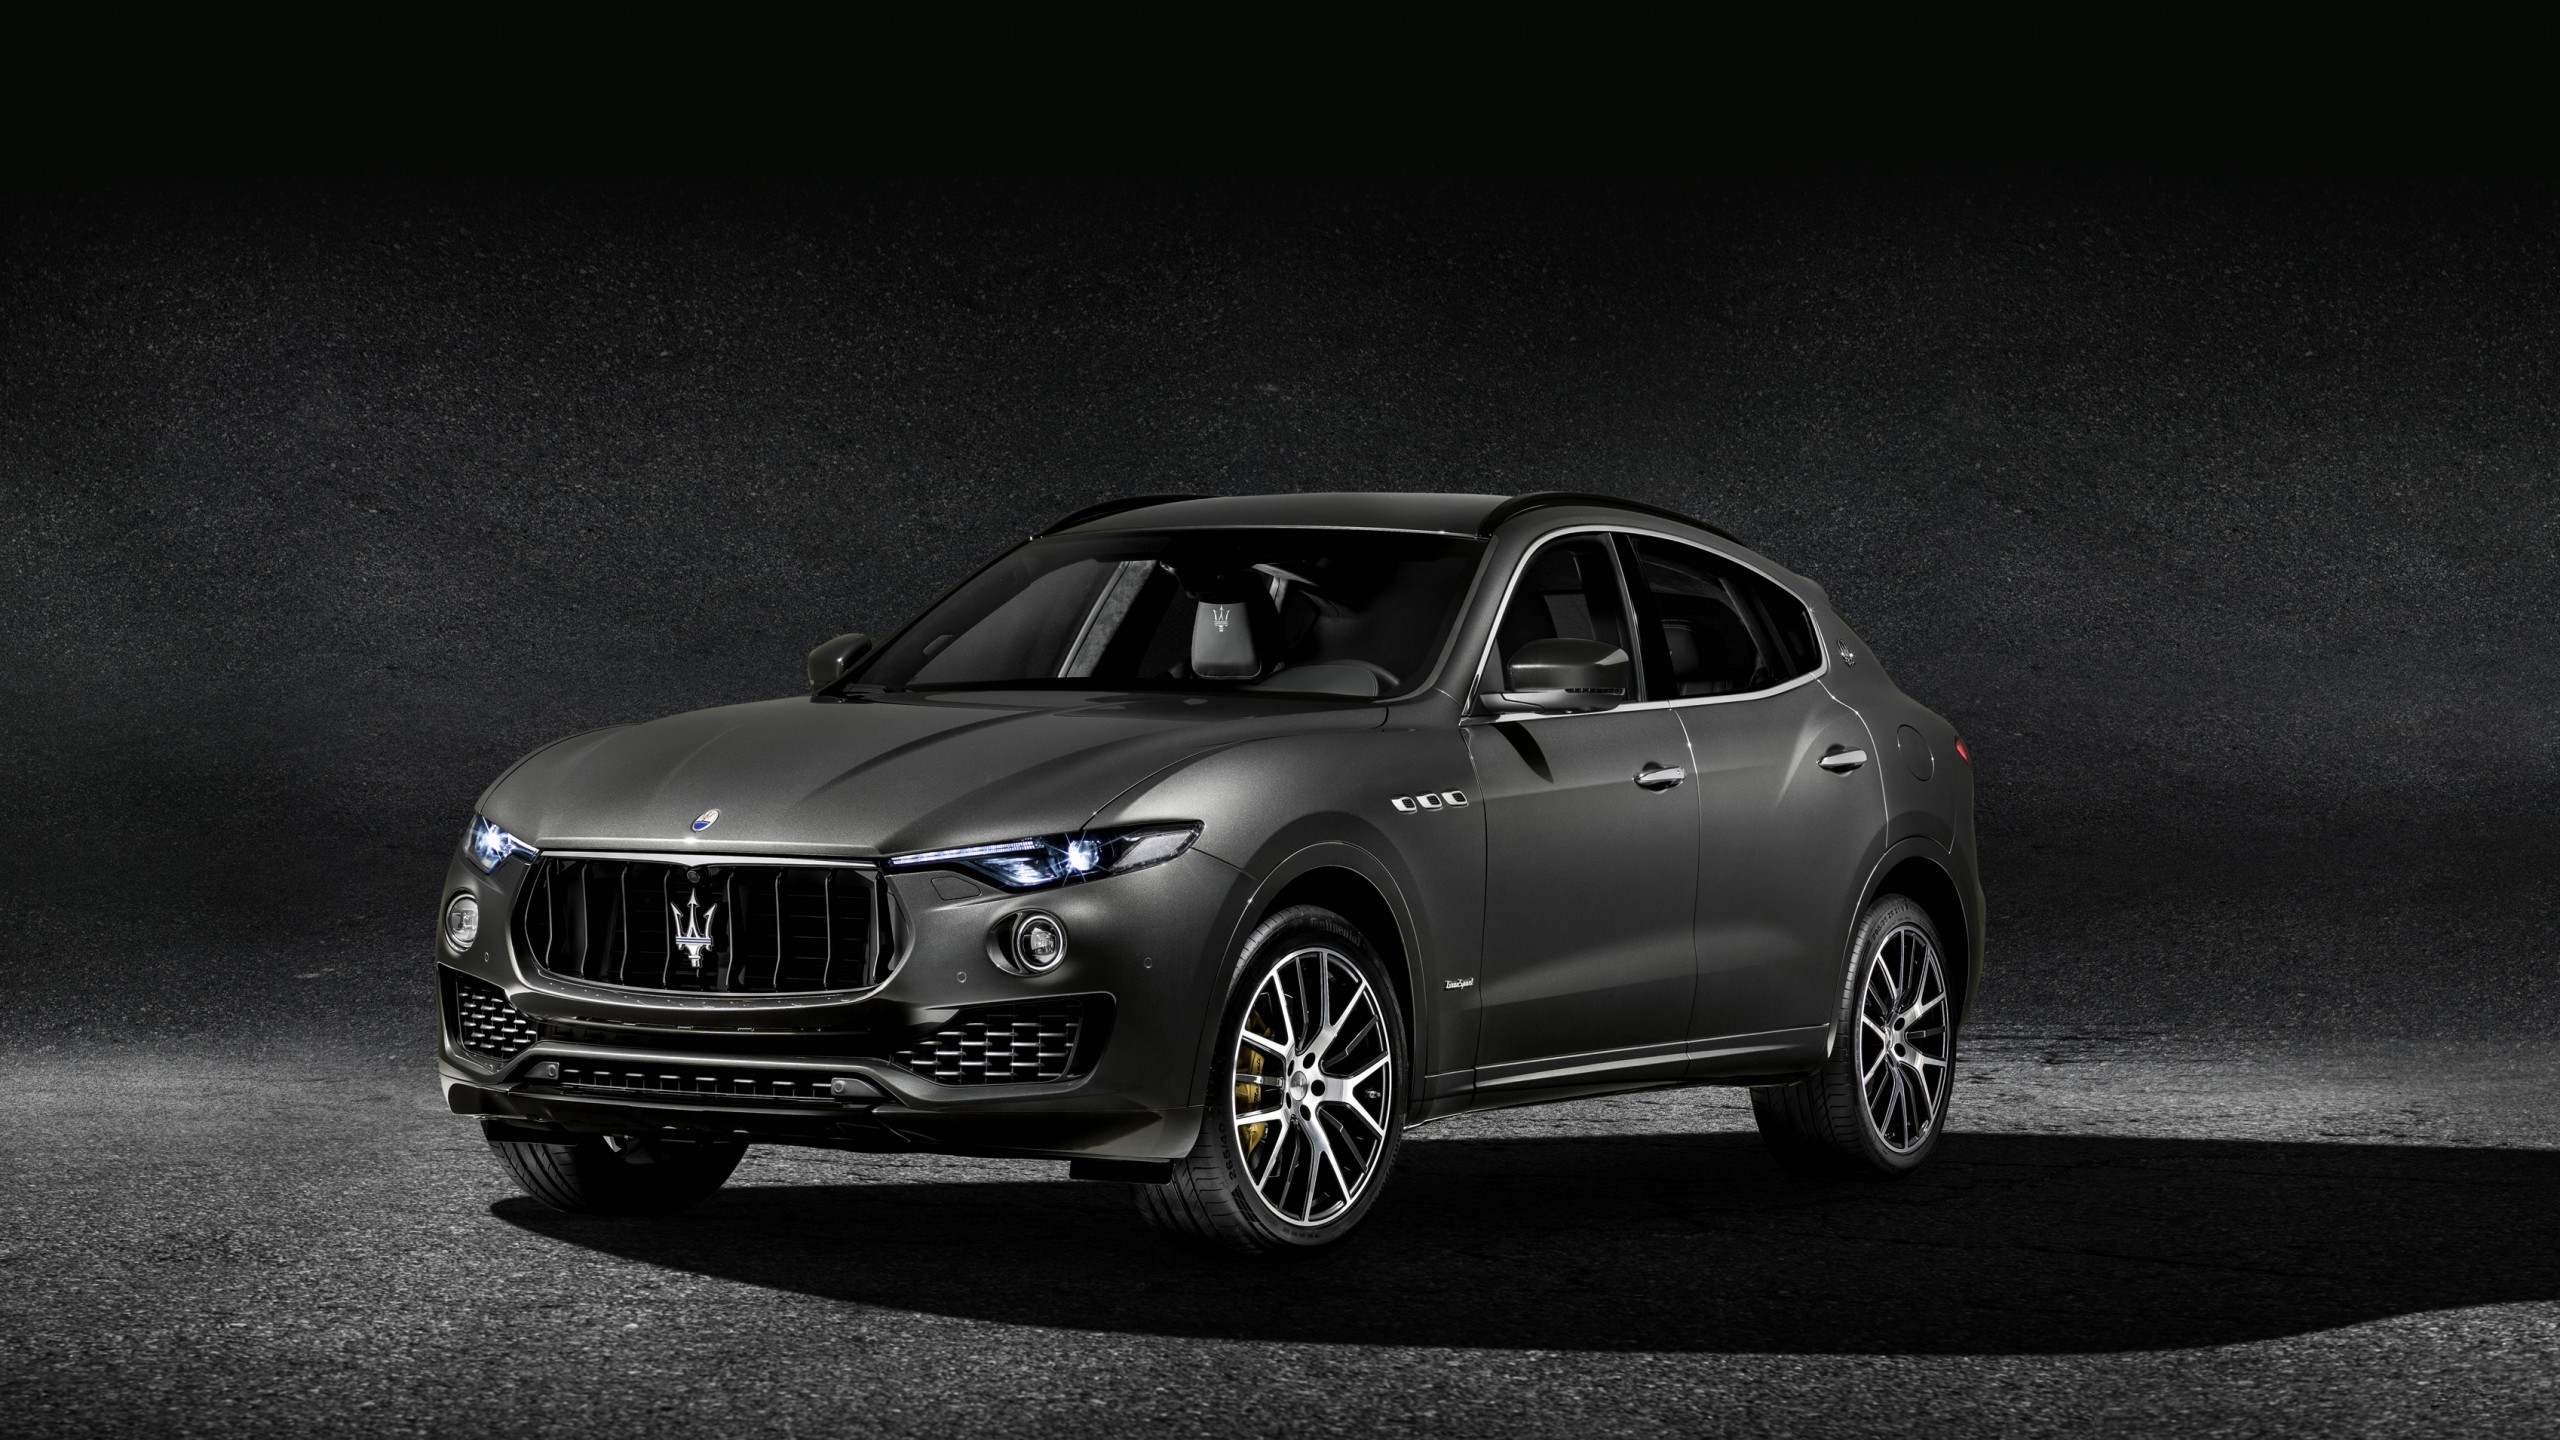 Land Rover Sport >> 2018 Maserati Levante S Q4 Gransport Wallpaper | HD Car Wallpapers | ID #8542